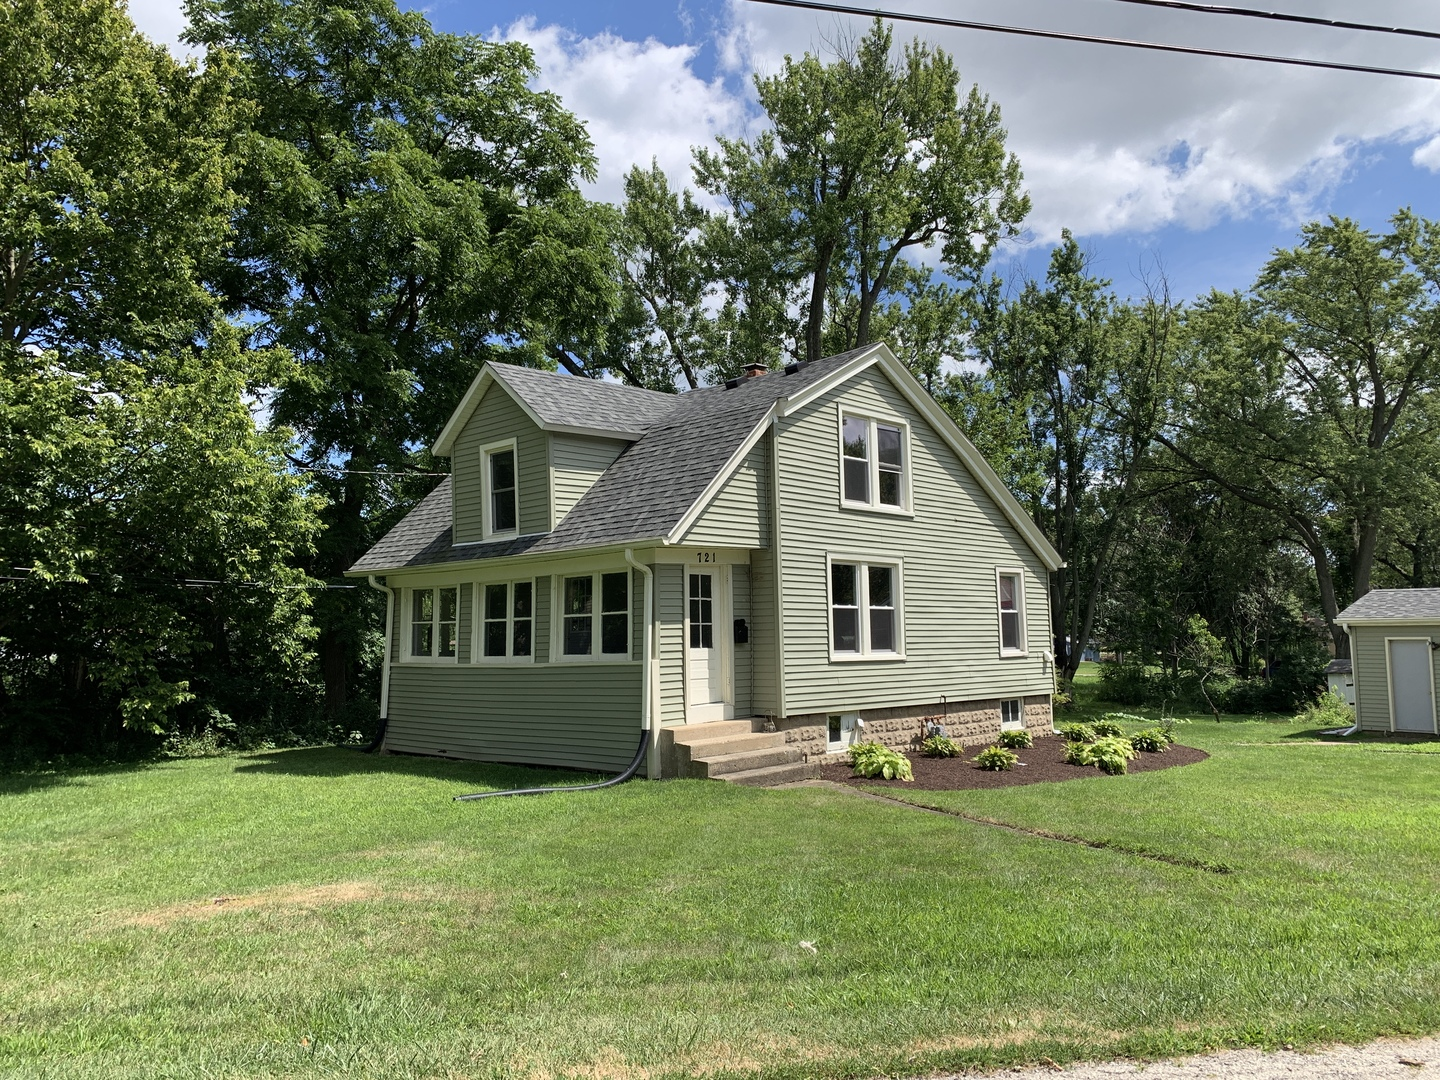 Photo for 721 Division Street, Woodstock, IL 60098 (MLS # 10582358)